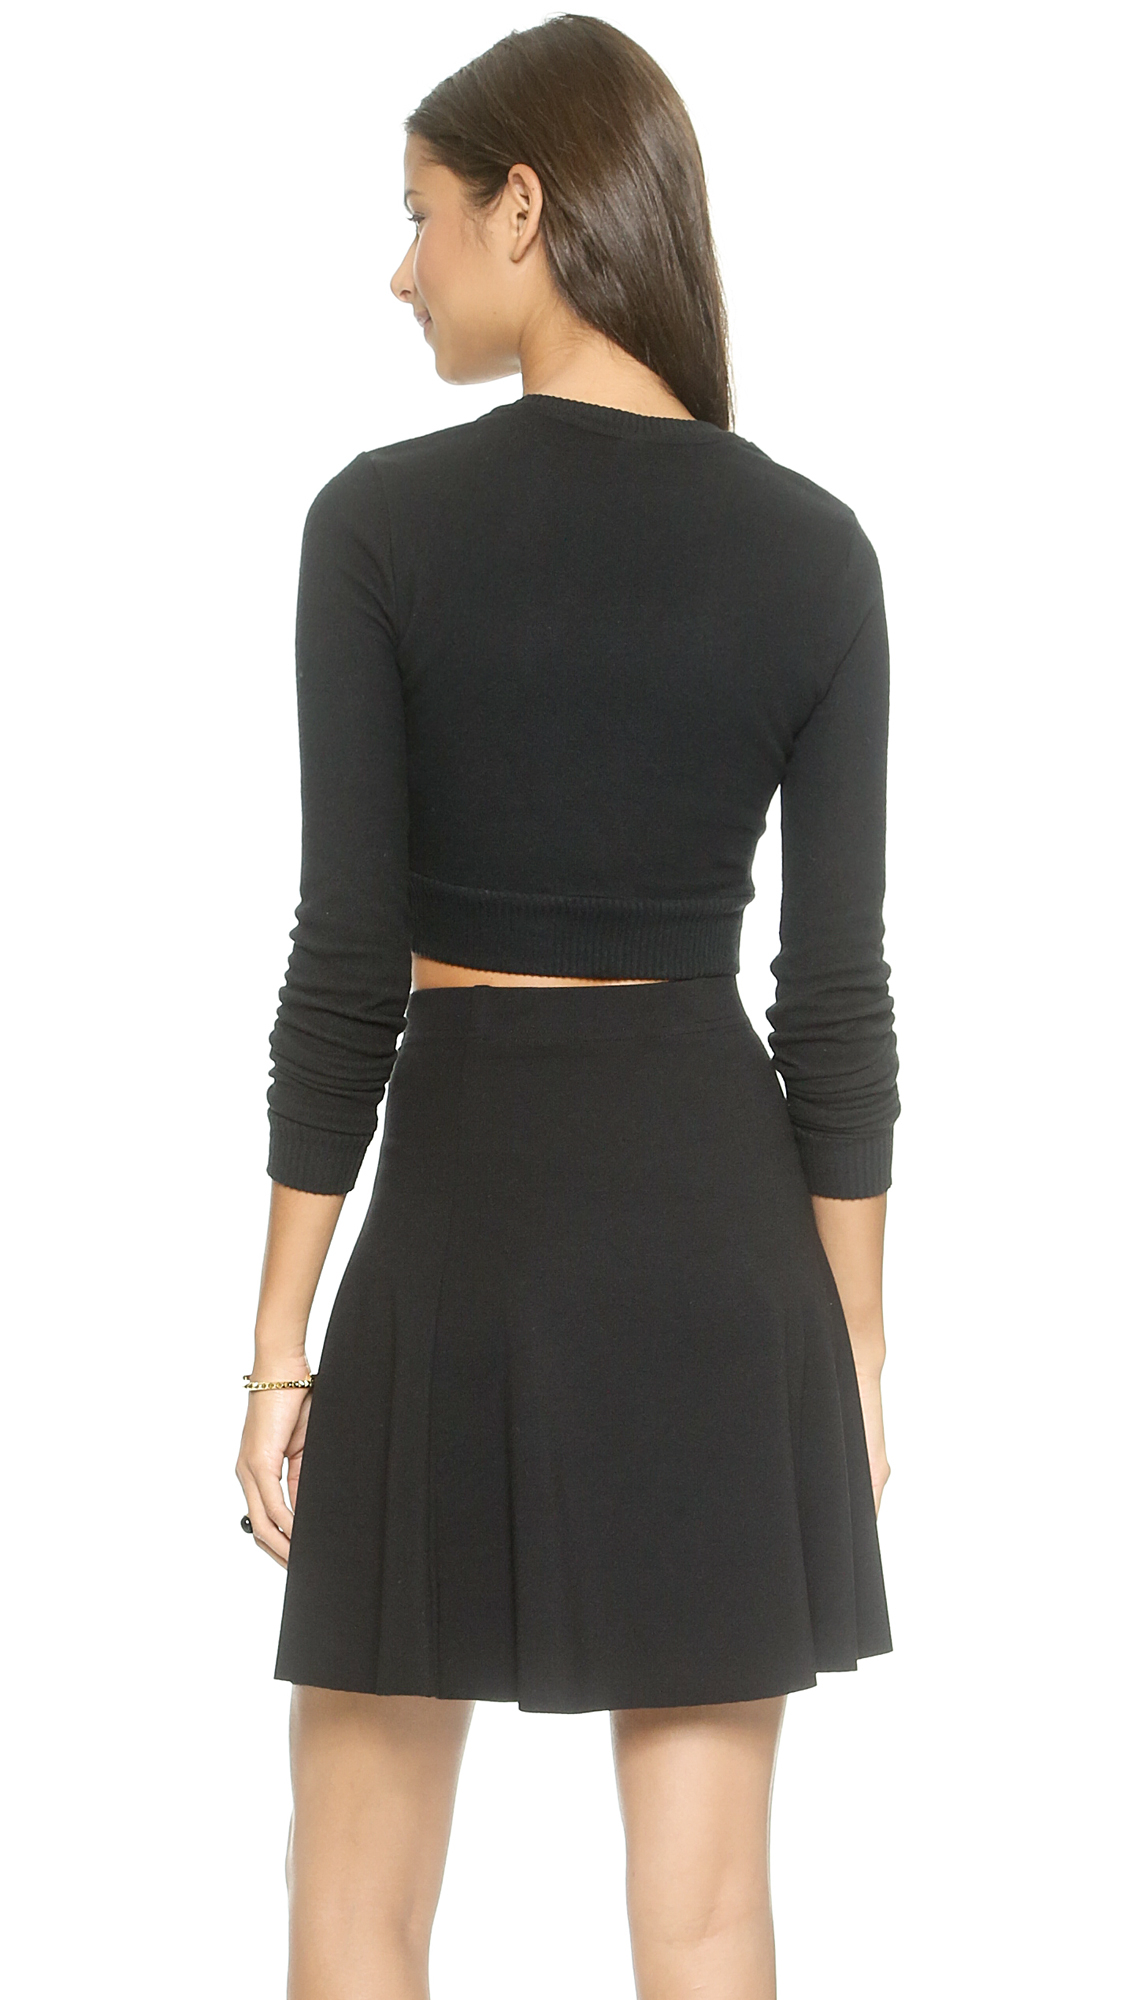 Three Dots Brushed Knit Cropped Sweater Black In Black